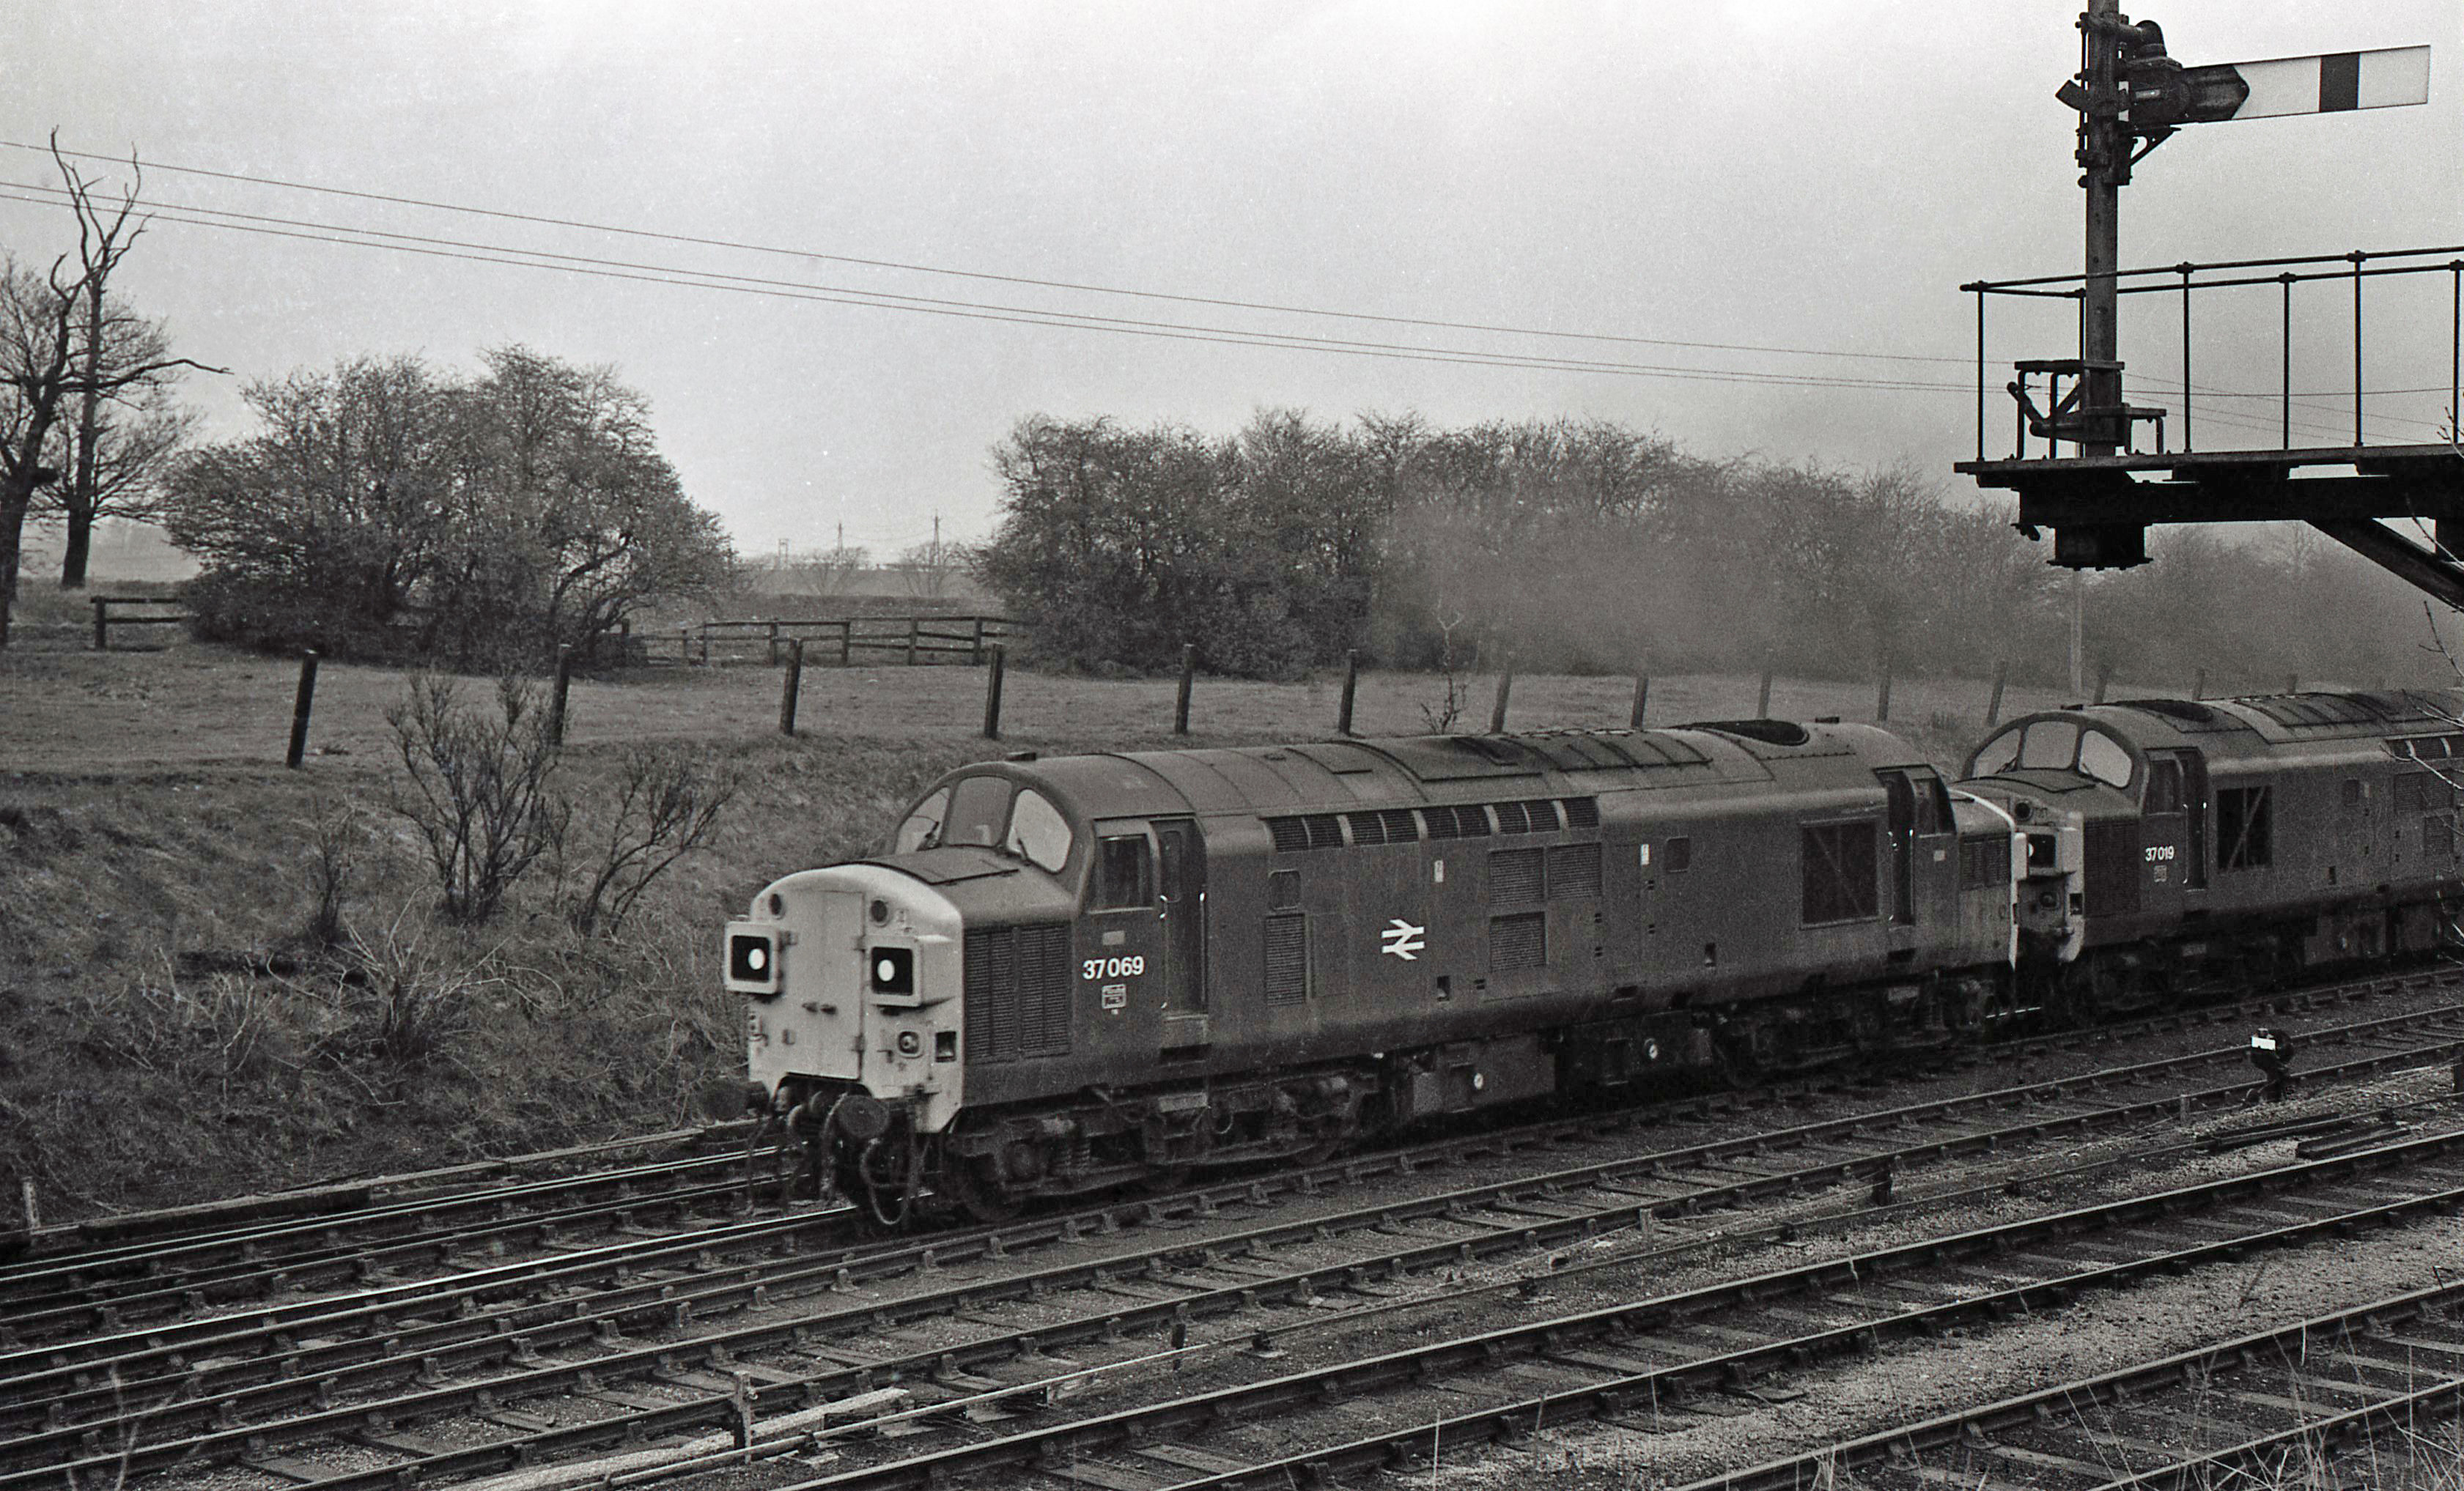 37069 and 37019 at South Pelaw Junction